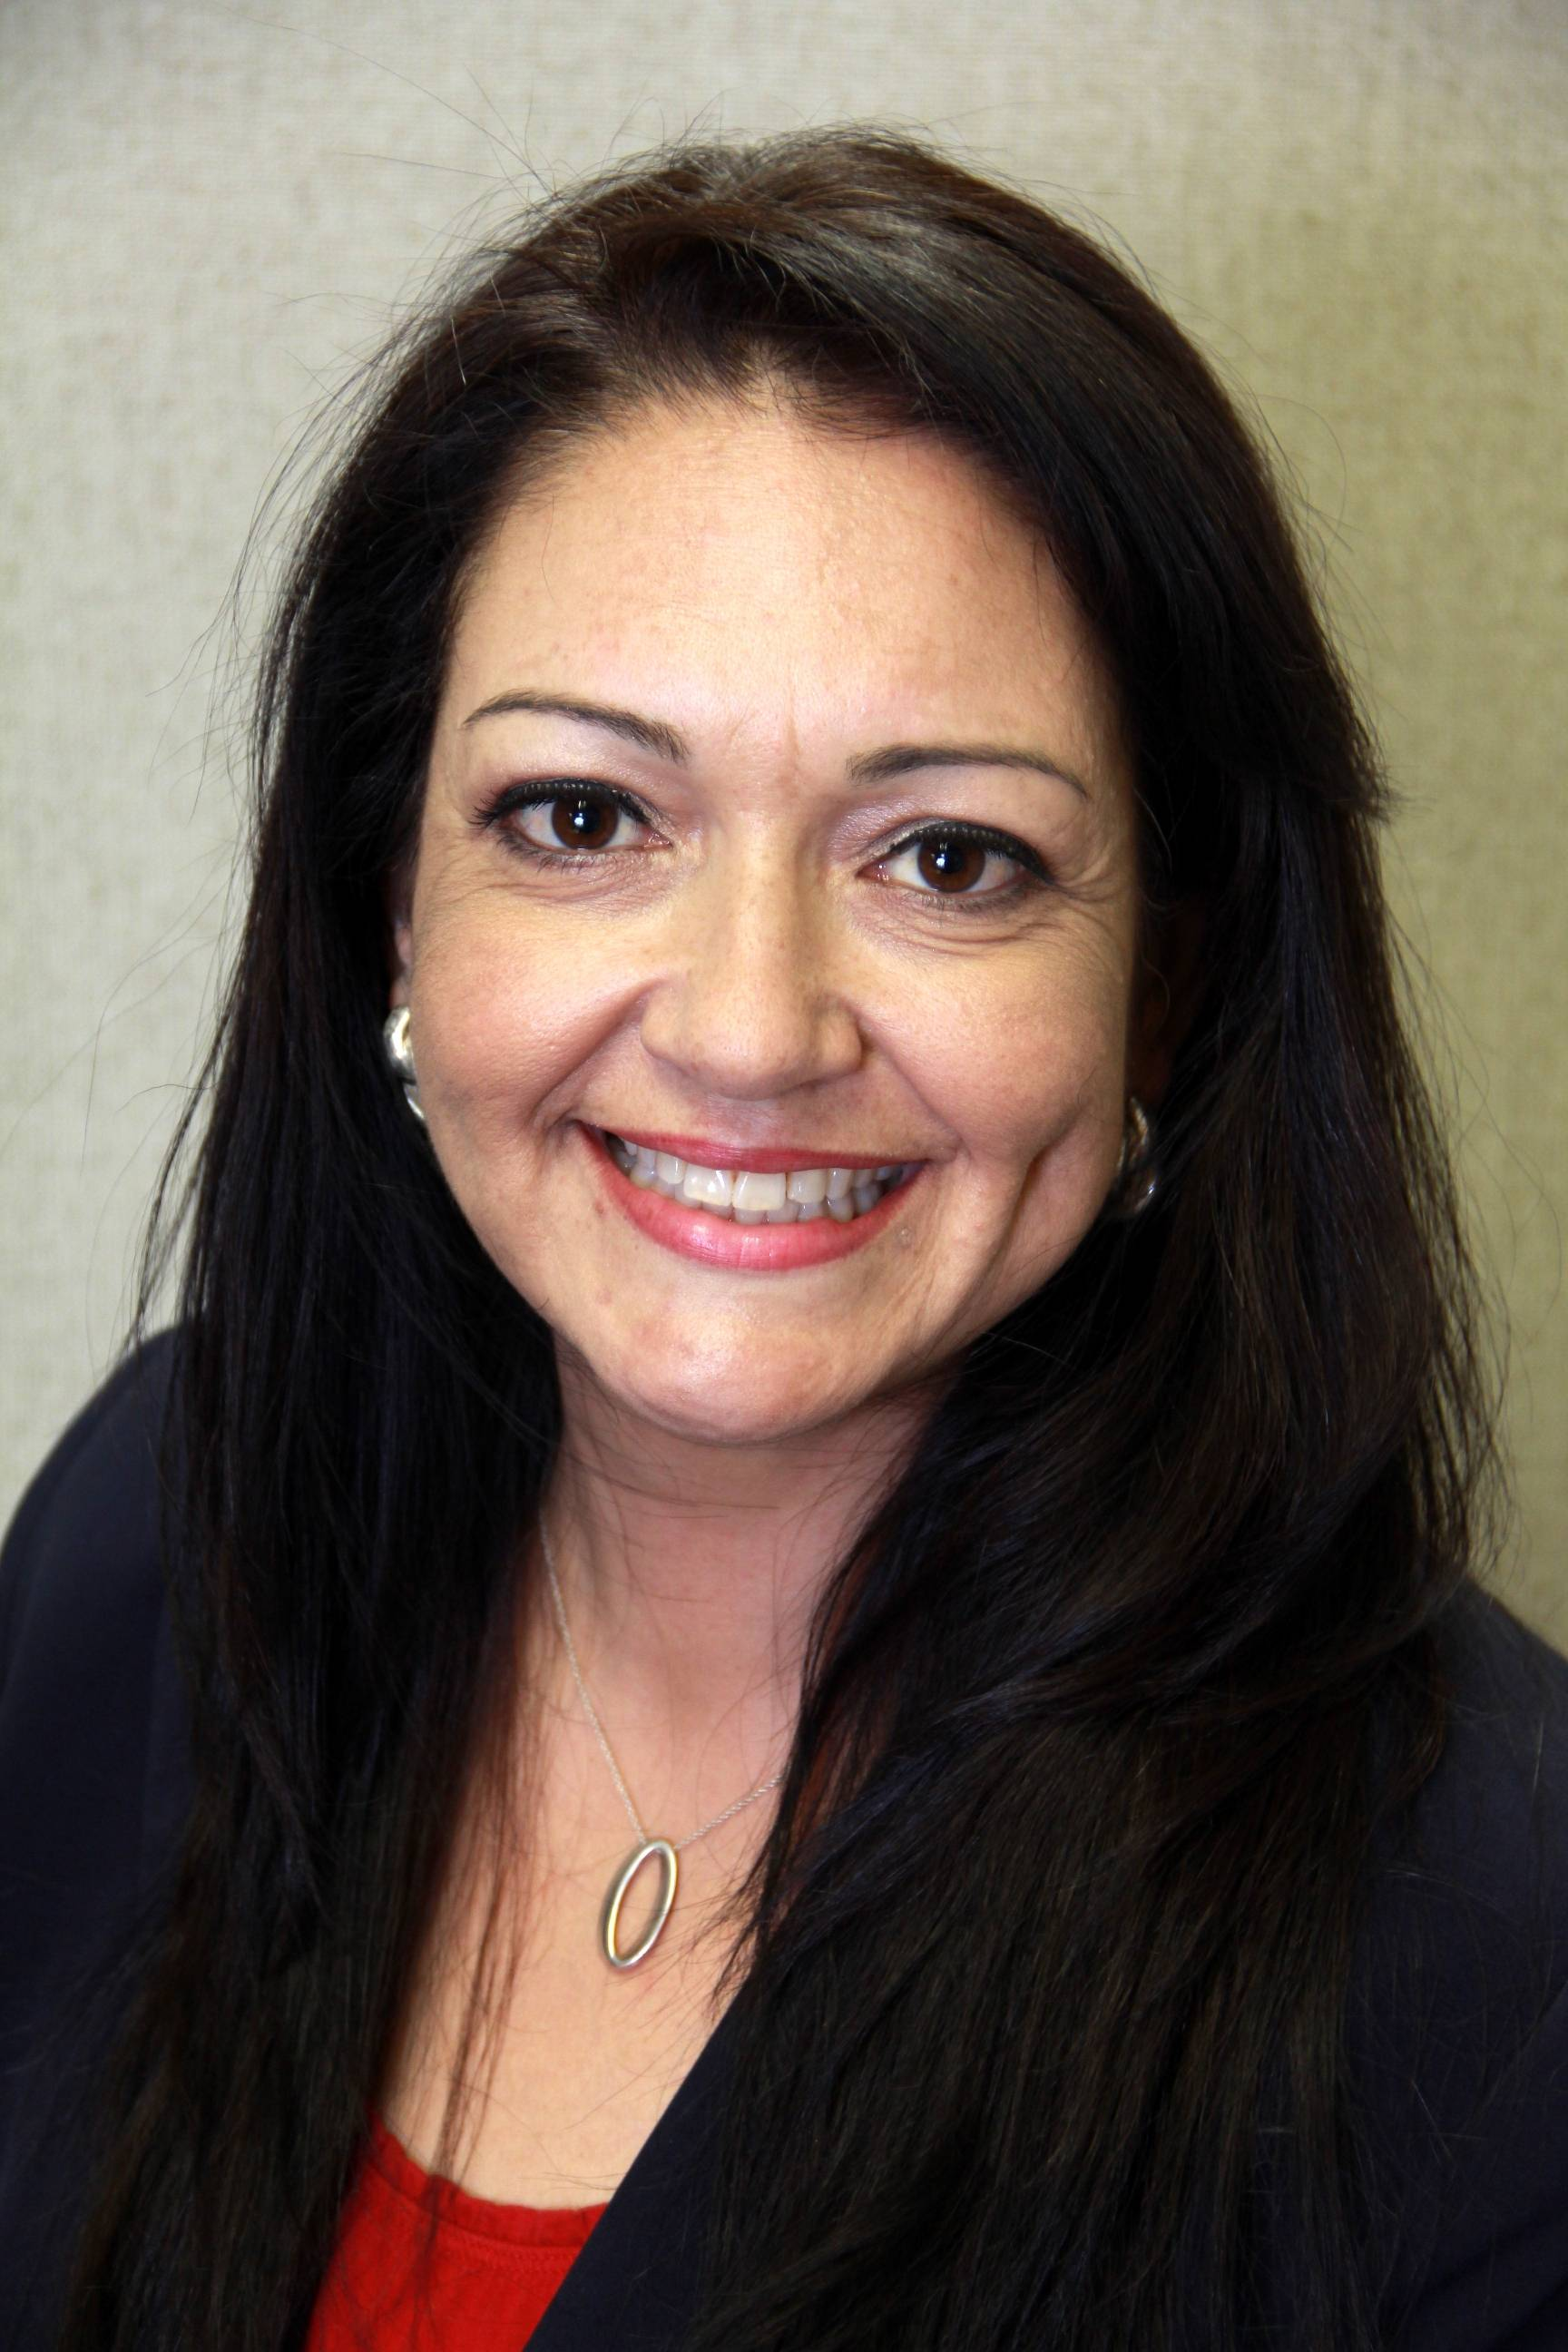 Ilsa Rivera-Trujillo, running for Bensenville Village Clerk (4-year Term)